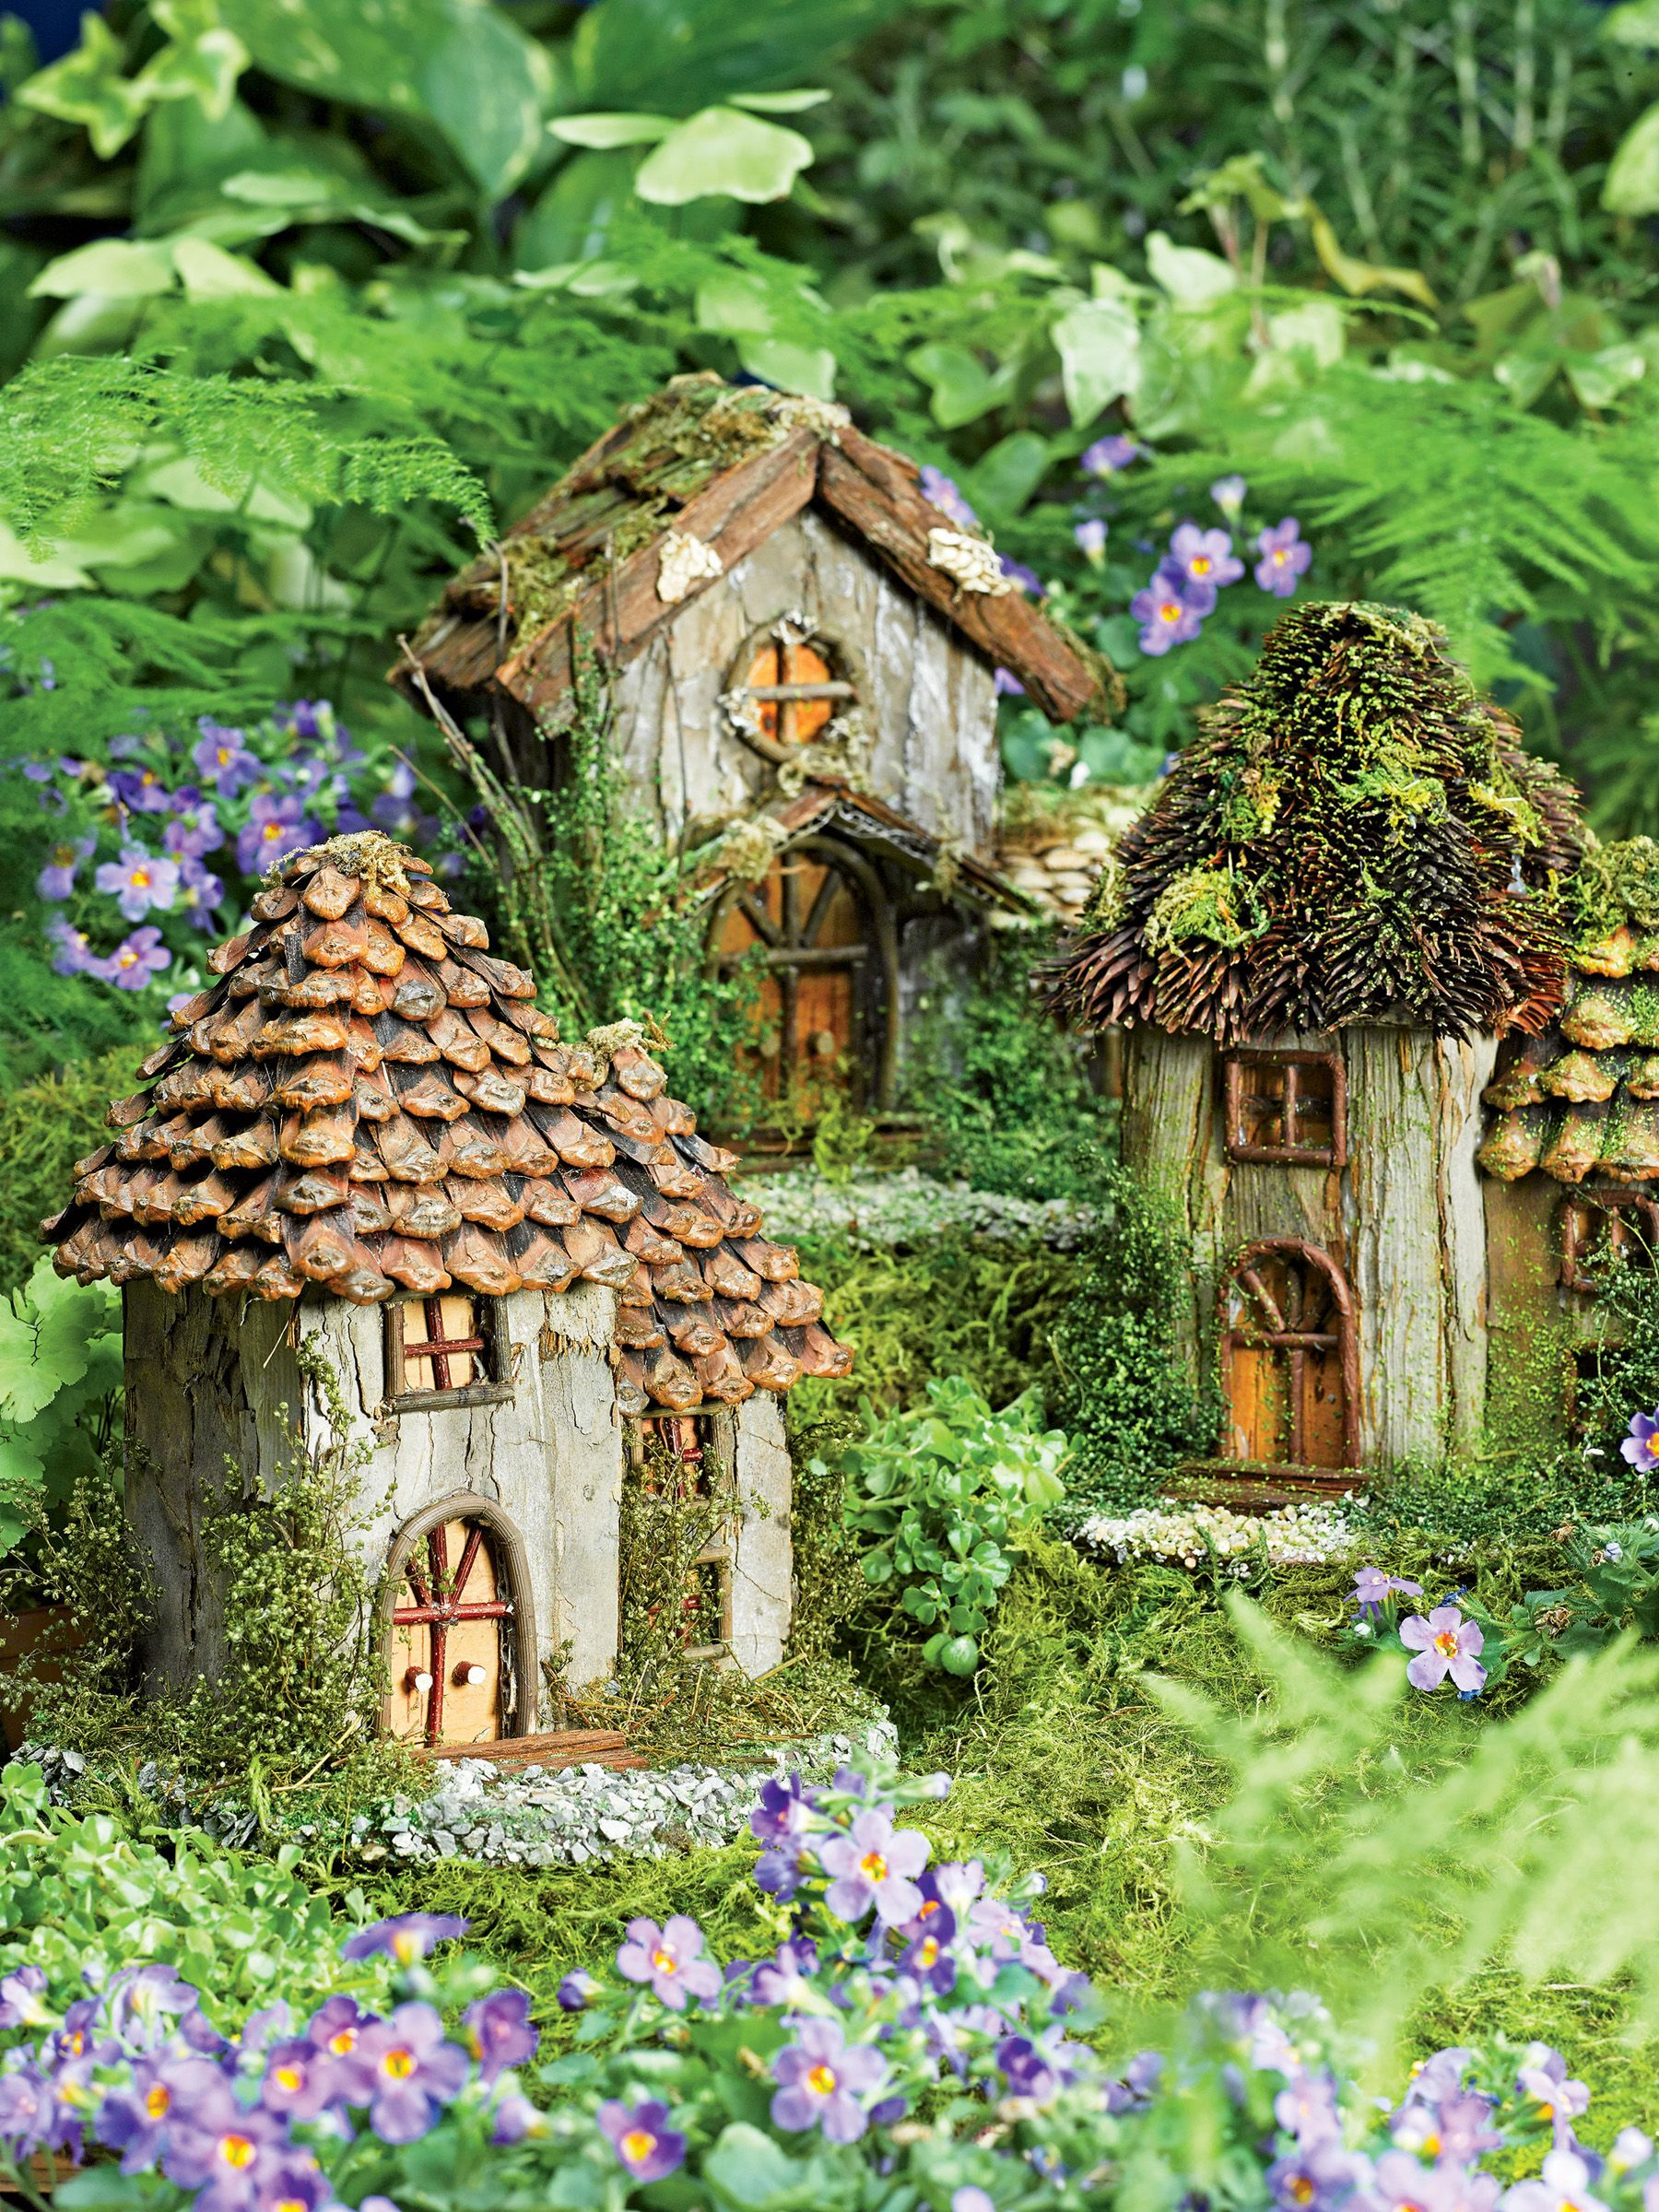 Elfentuintje | Garten | Pinterest | Fairy houses, Fairy and Gardens